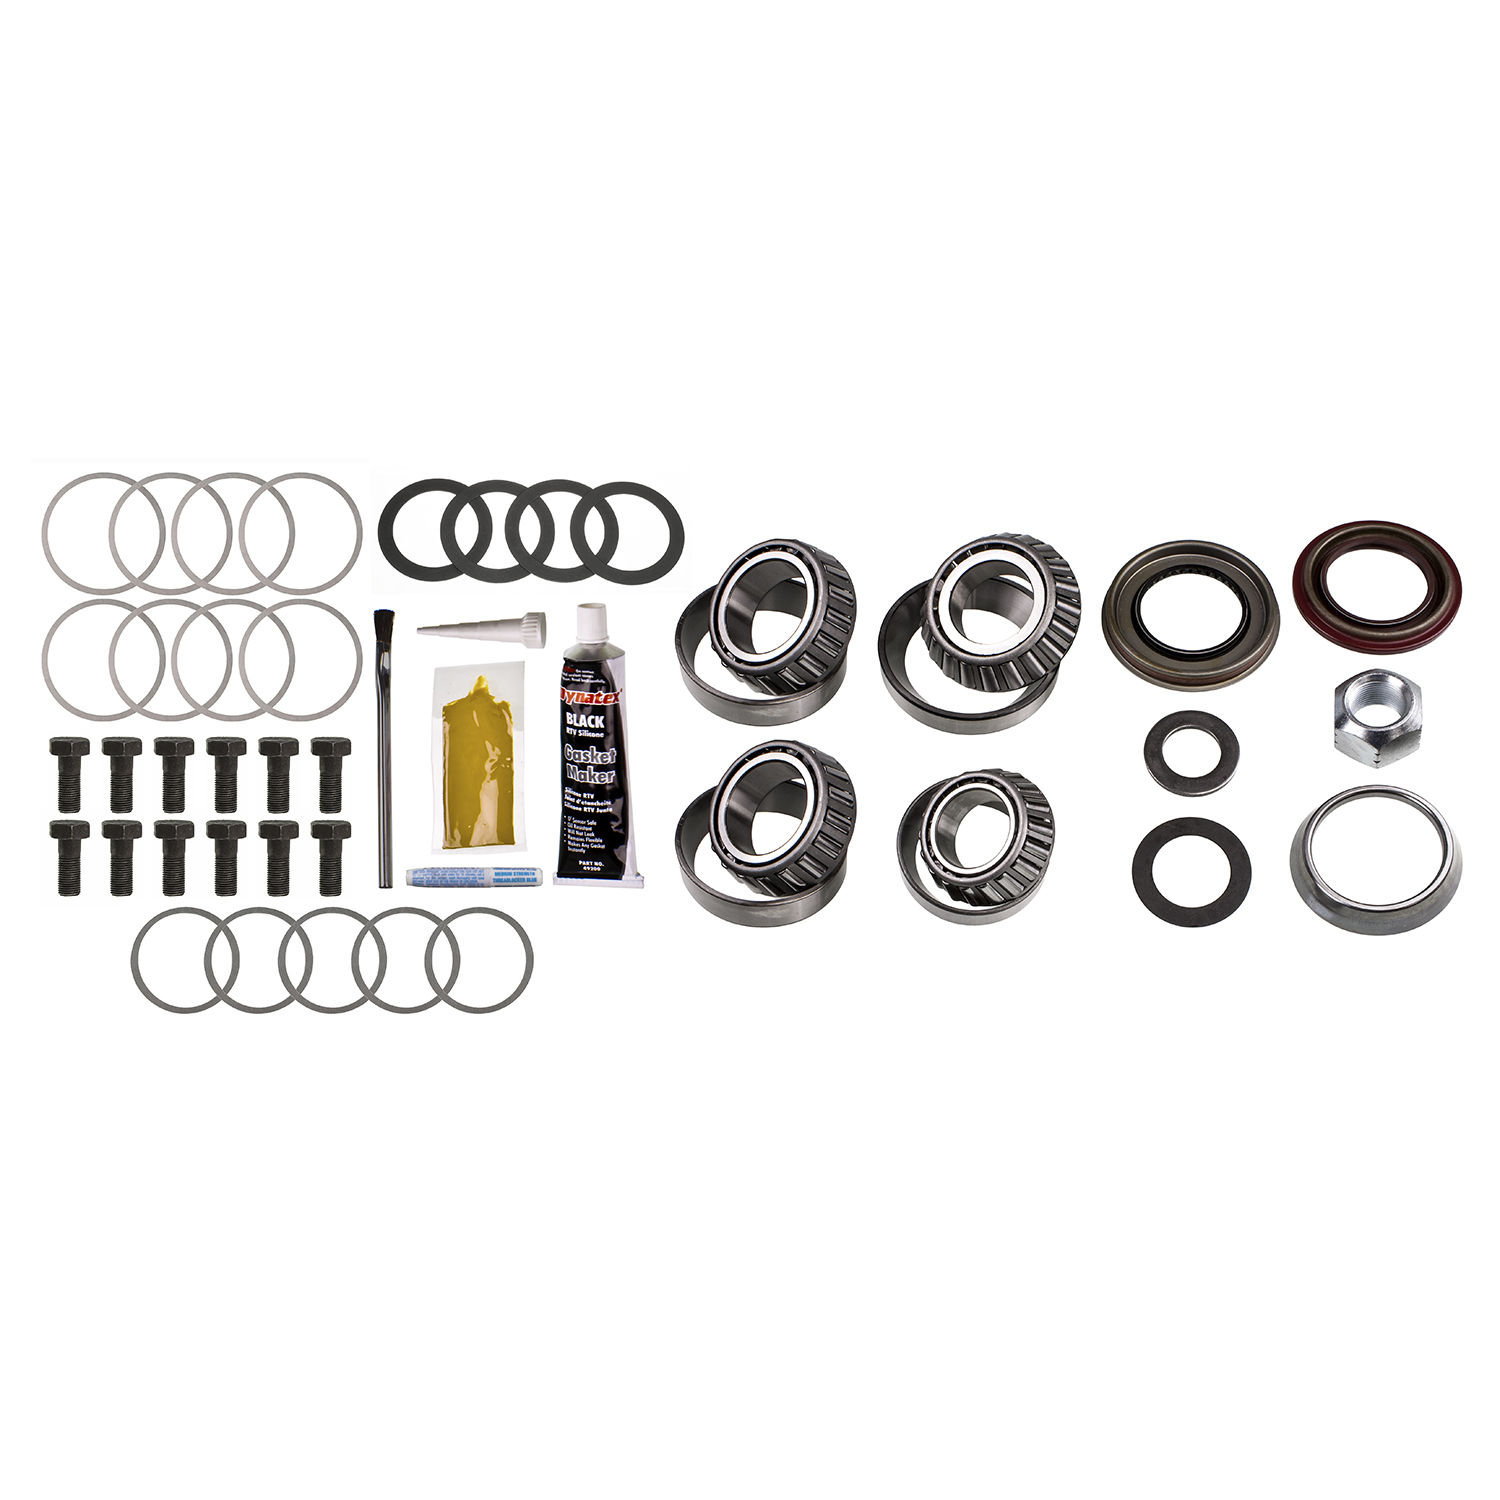 Motive Gear R80ramkt Master Bearing Kit